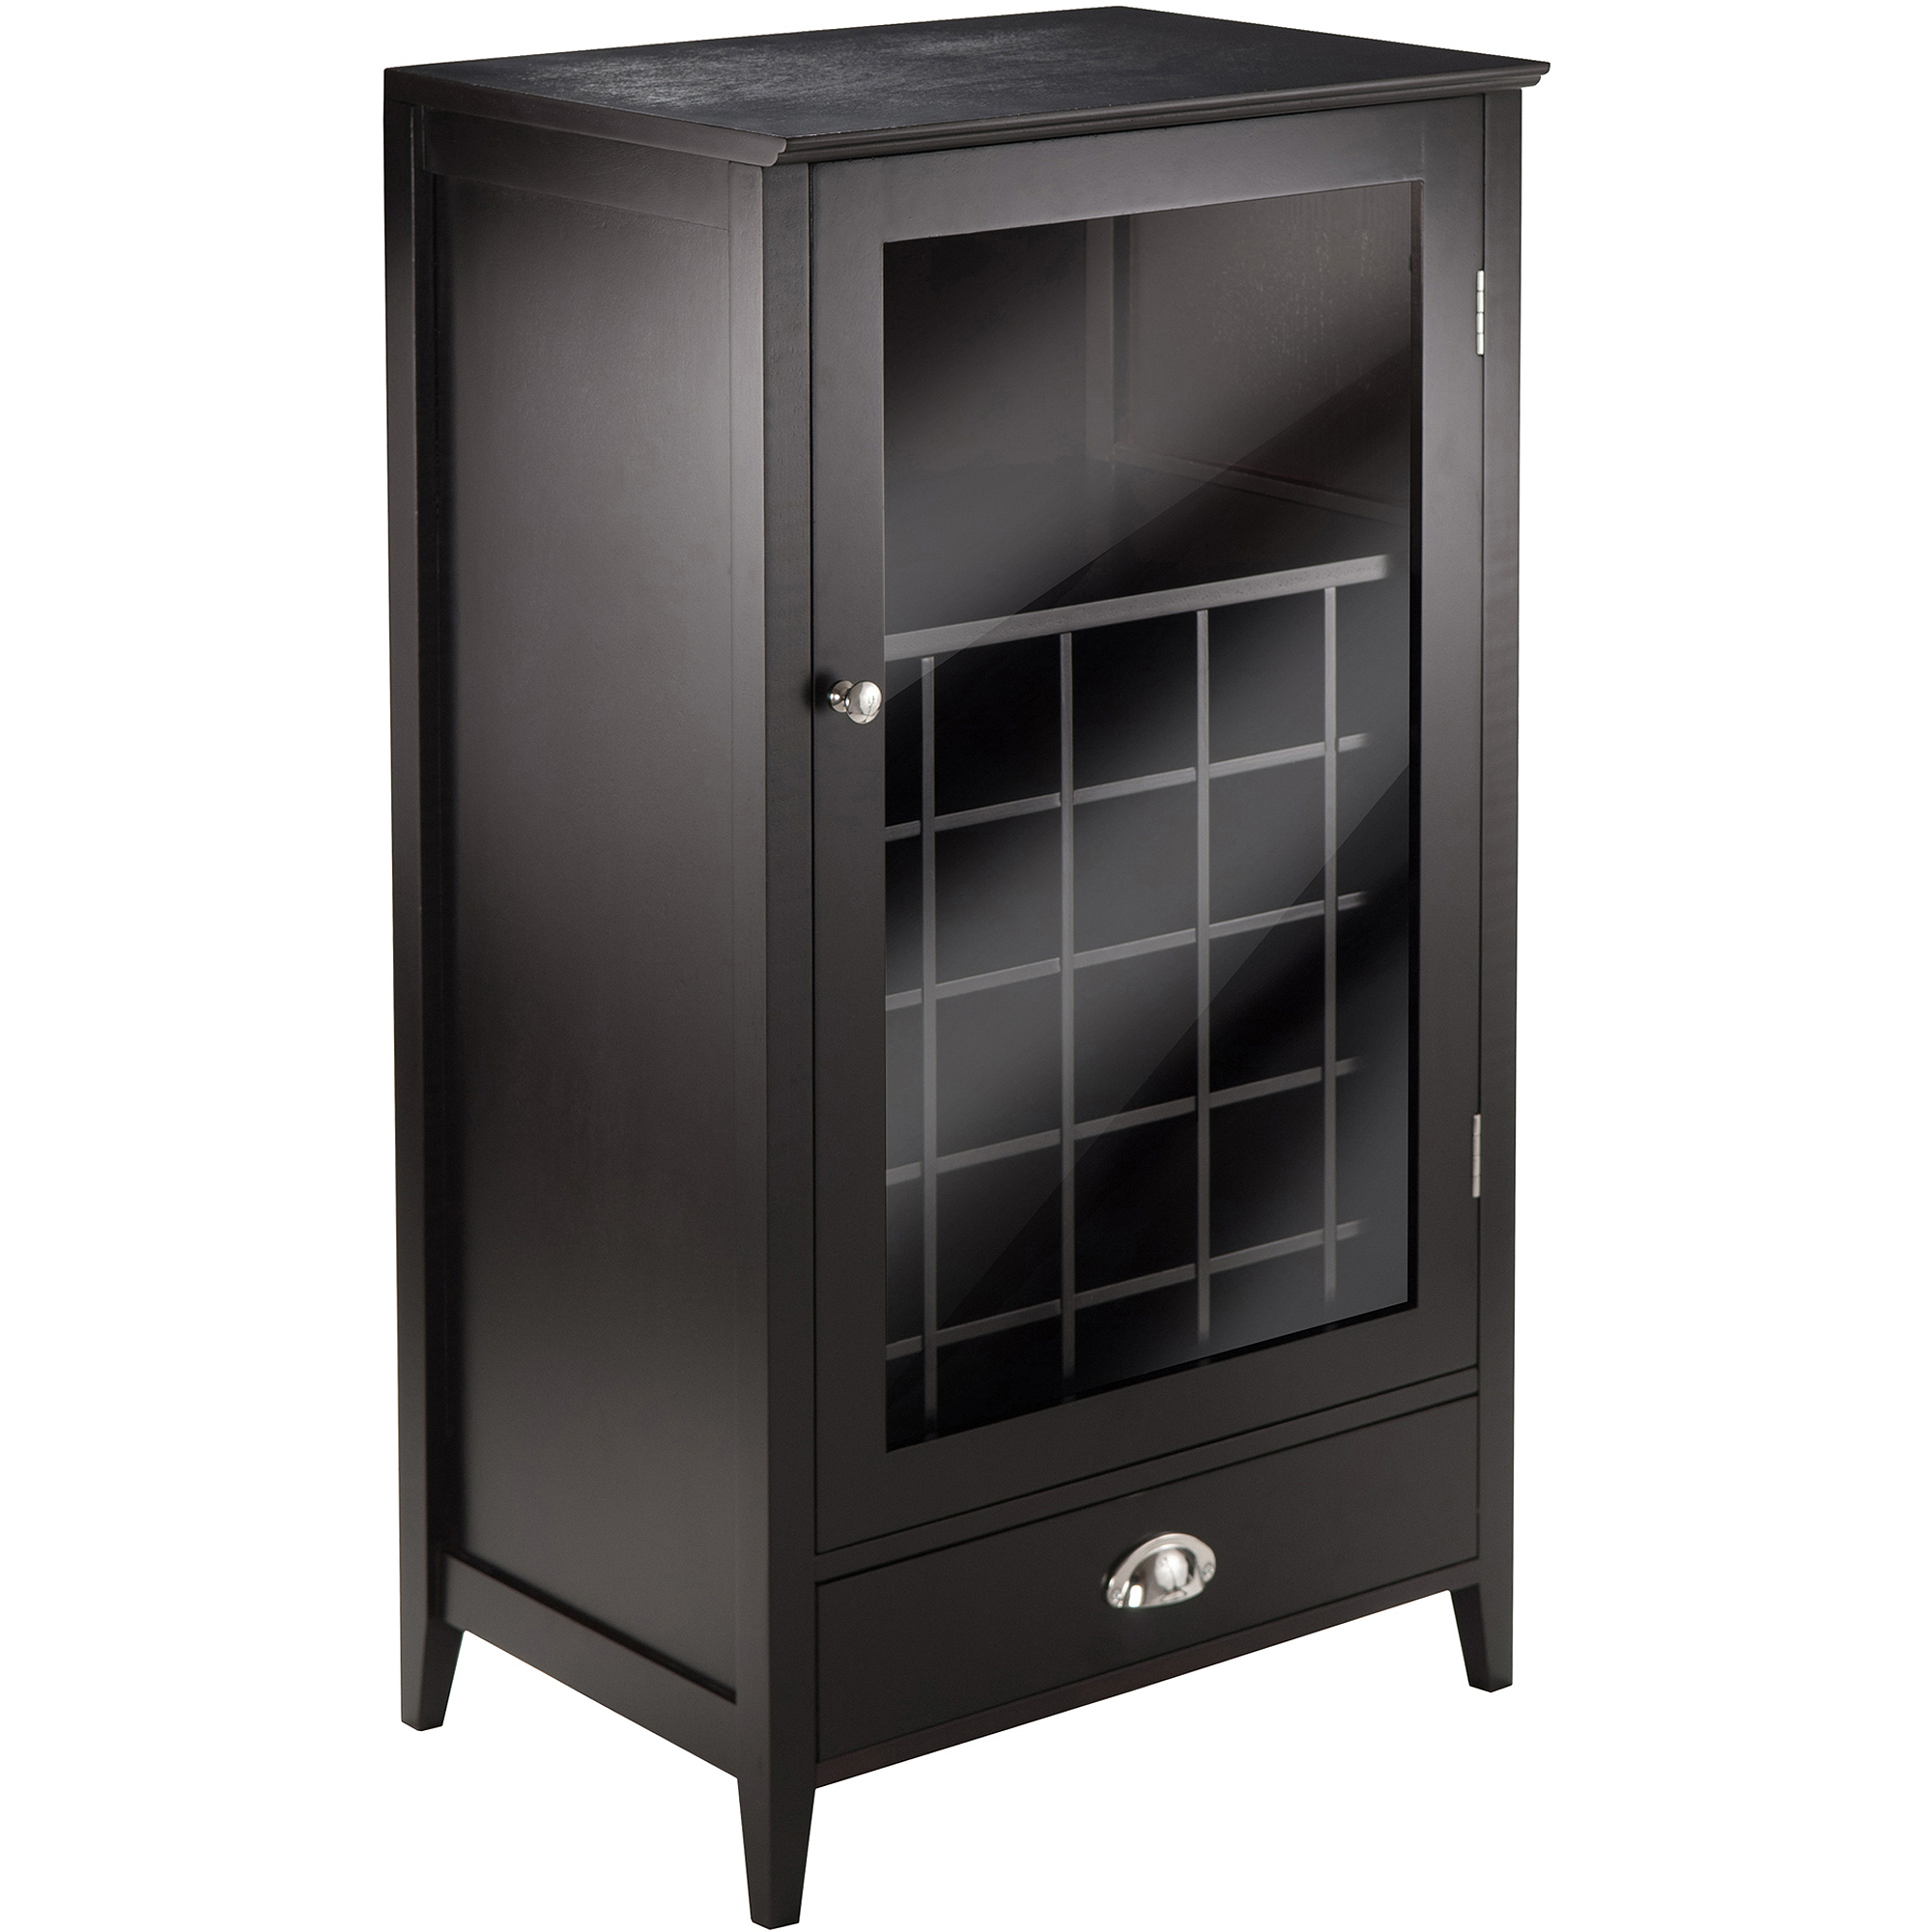 Winsome Wood Bordeaux 25-Bottle Modular Wine Cabinet, Espresso Finish